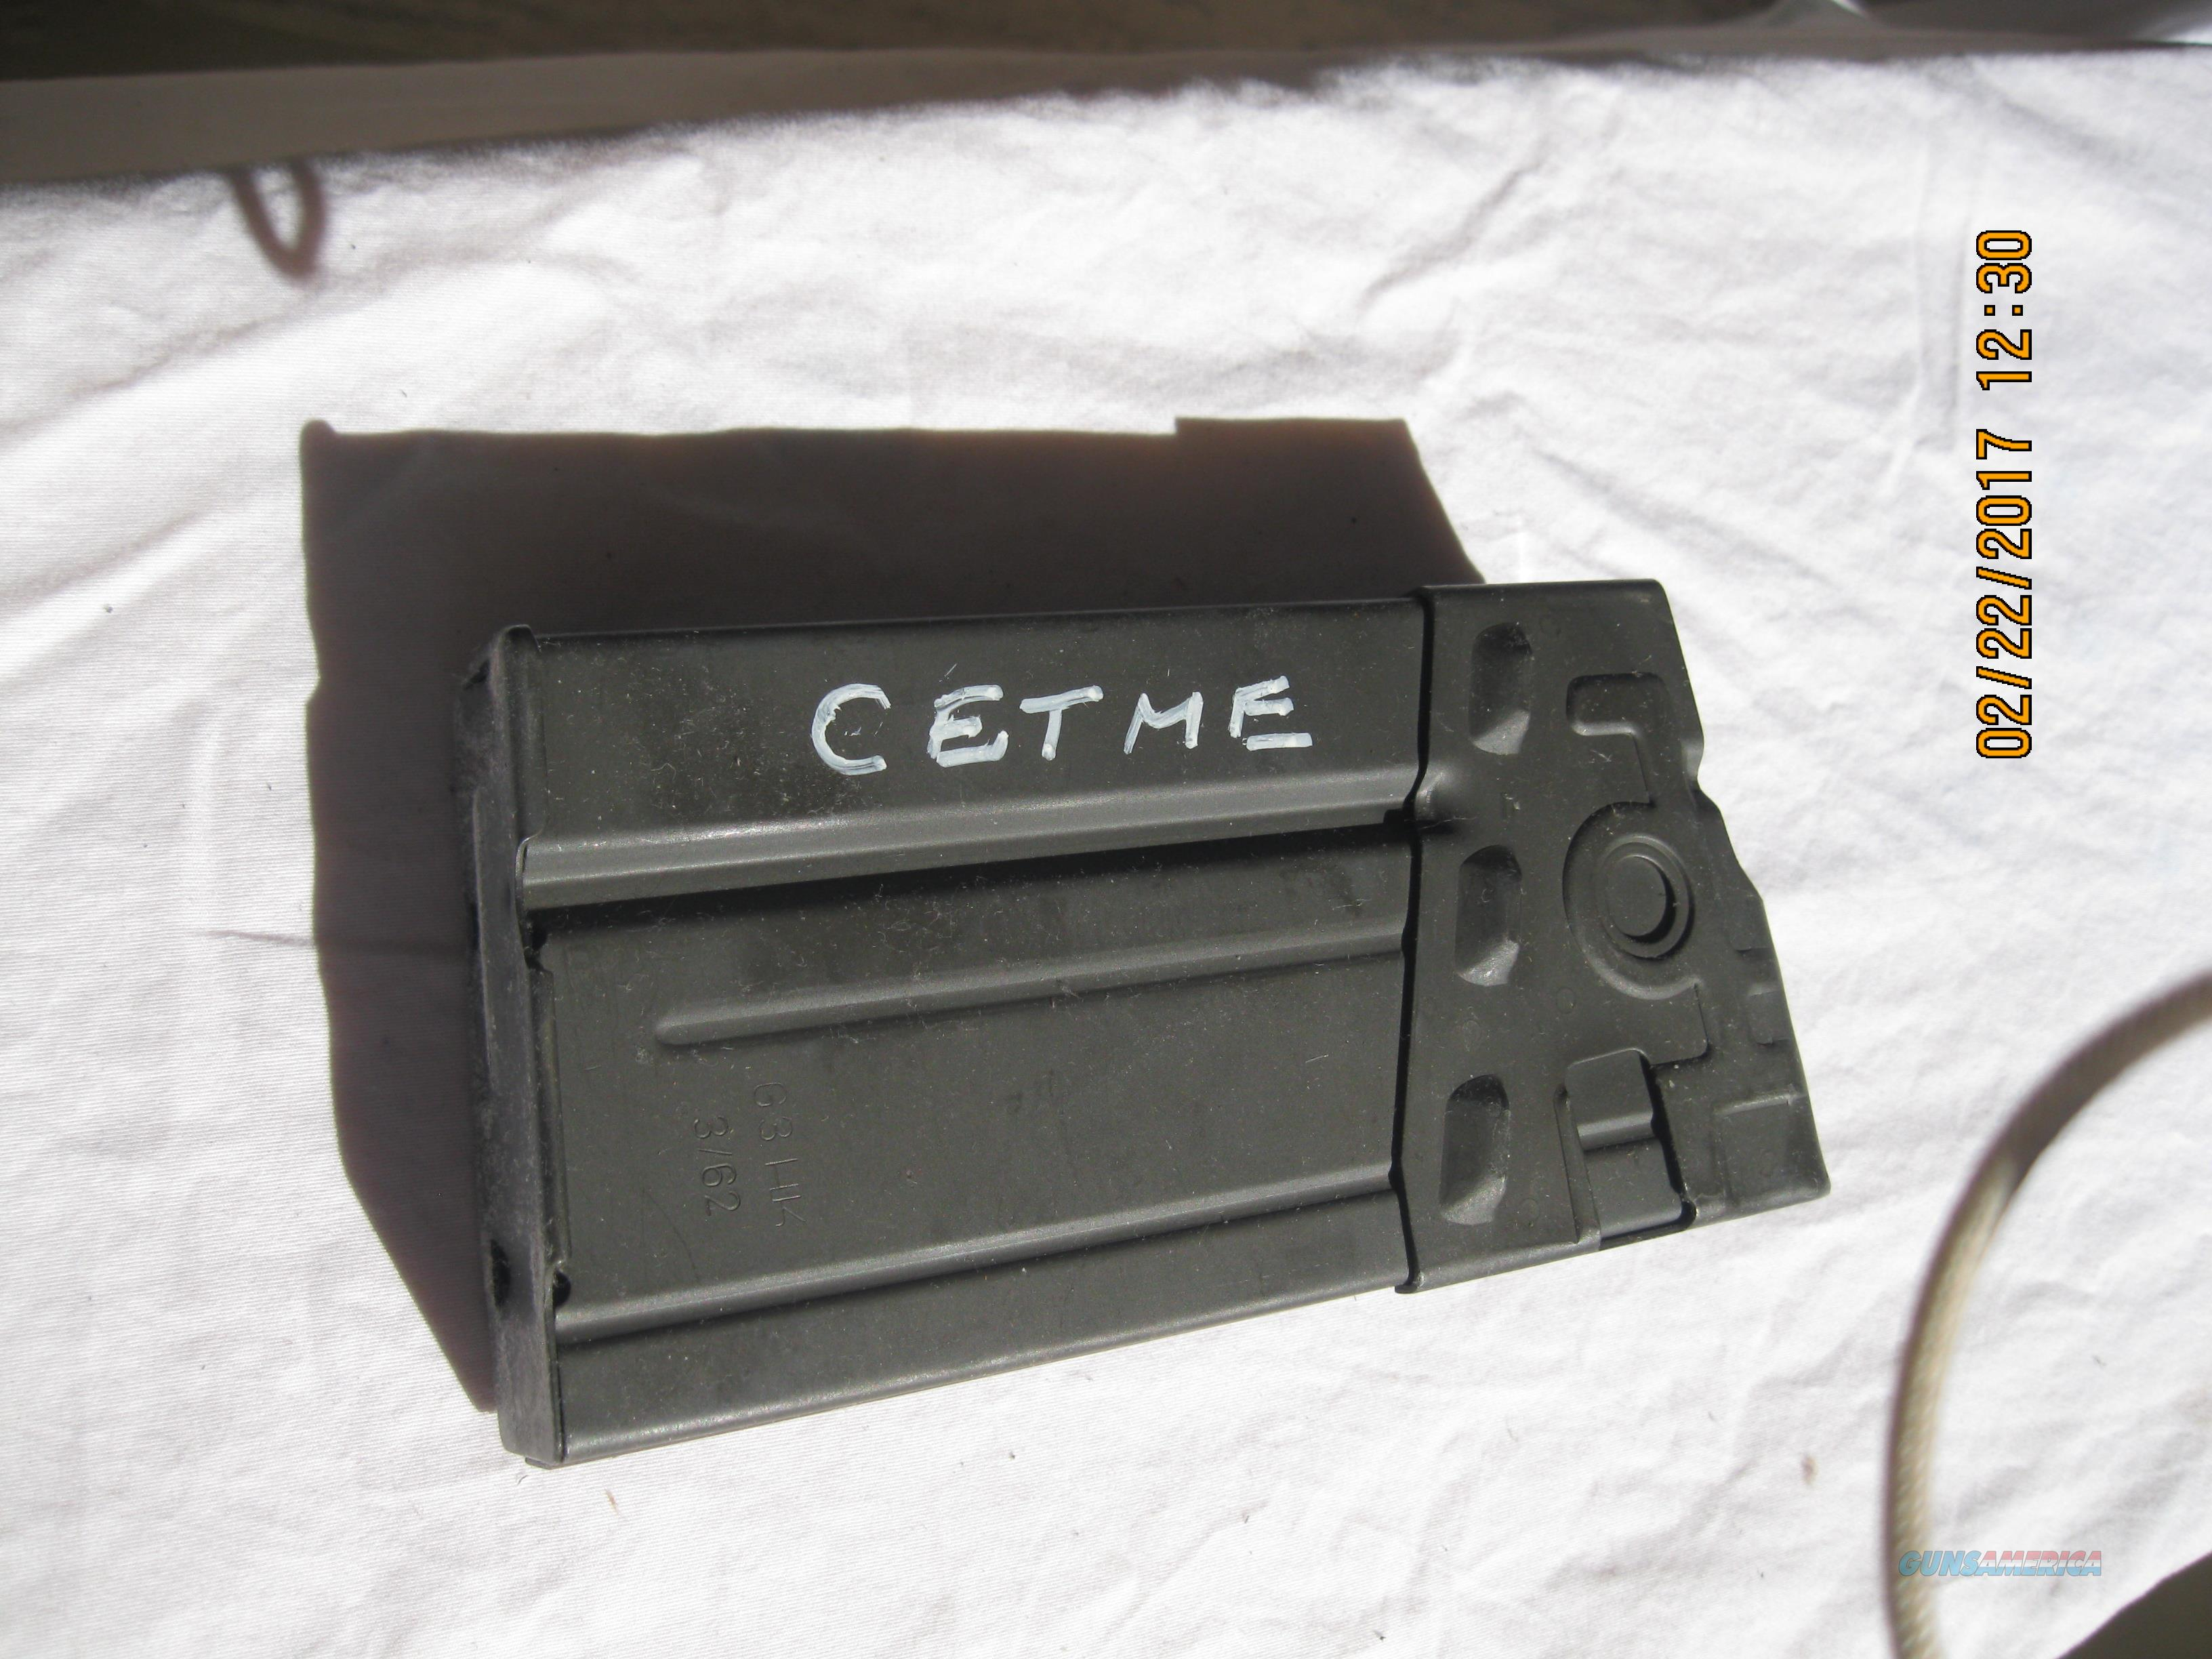 CETME ORIGINAL STEEL MAGAZINE IN .308 NATO  Non-Guns > Magazines & Clips > Rifle Magazines > HK/CETME